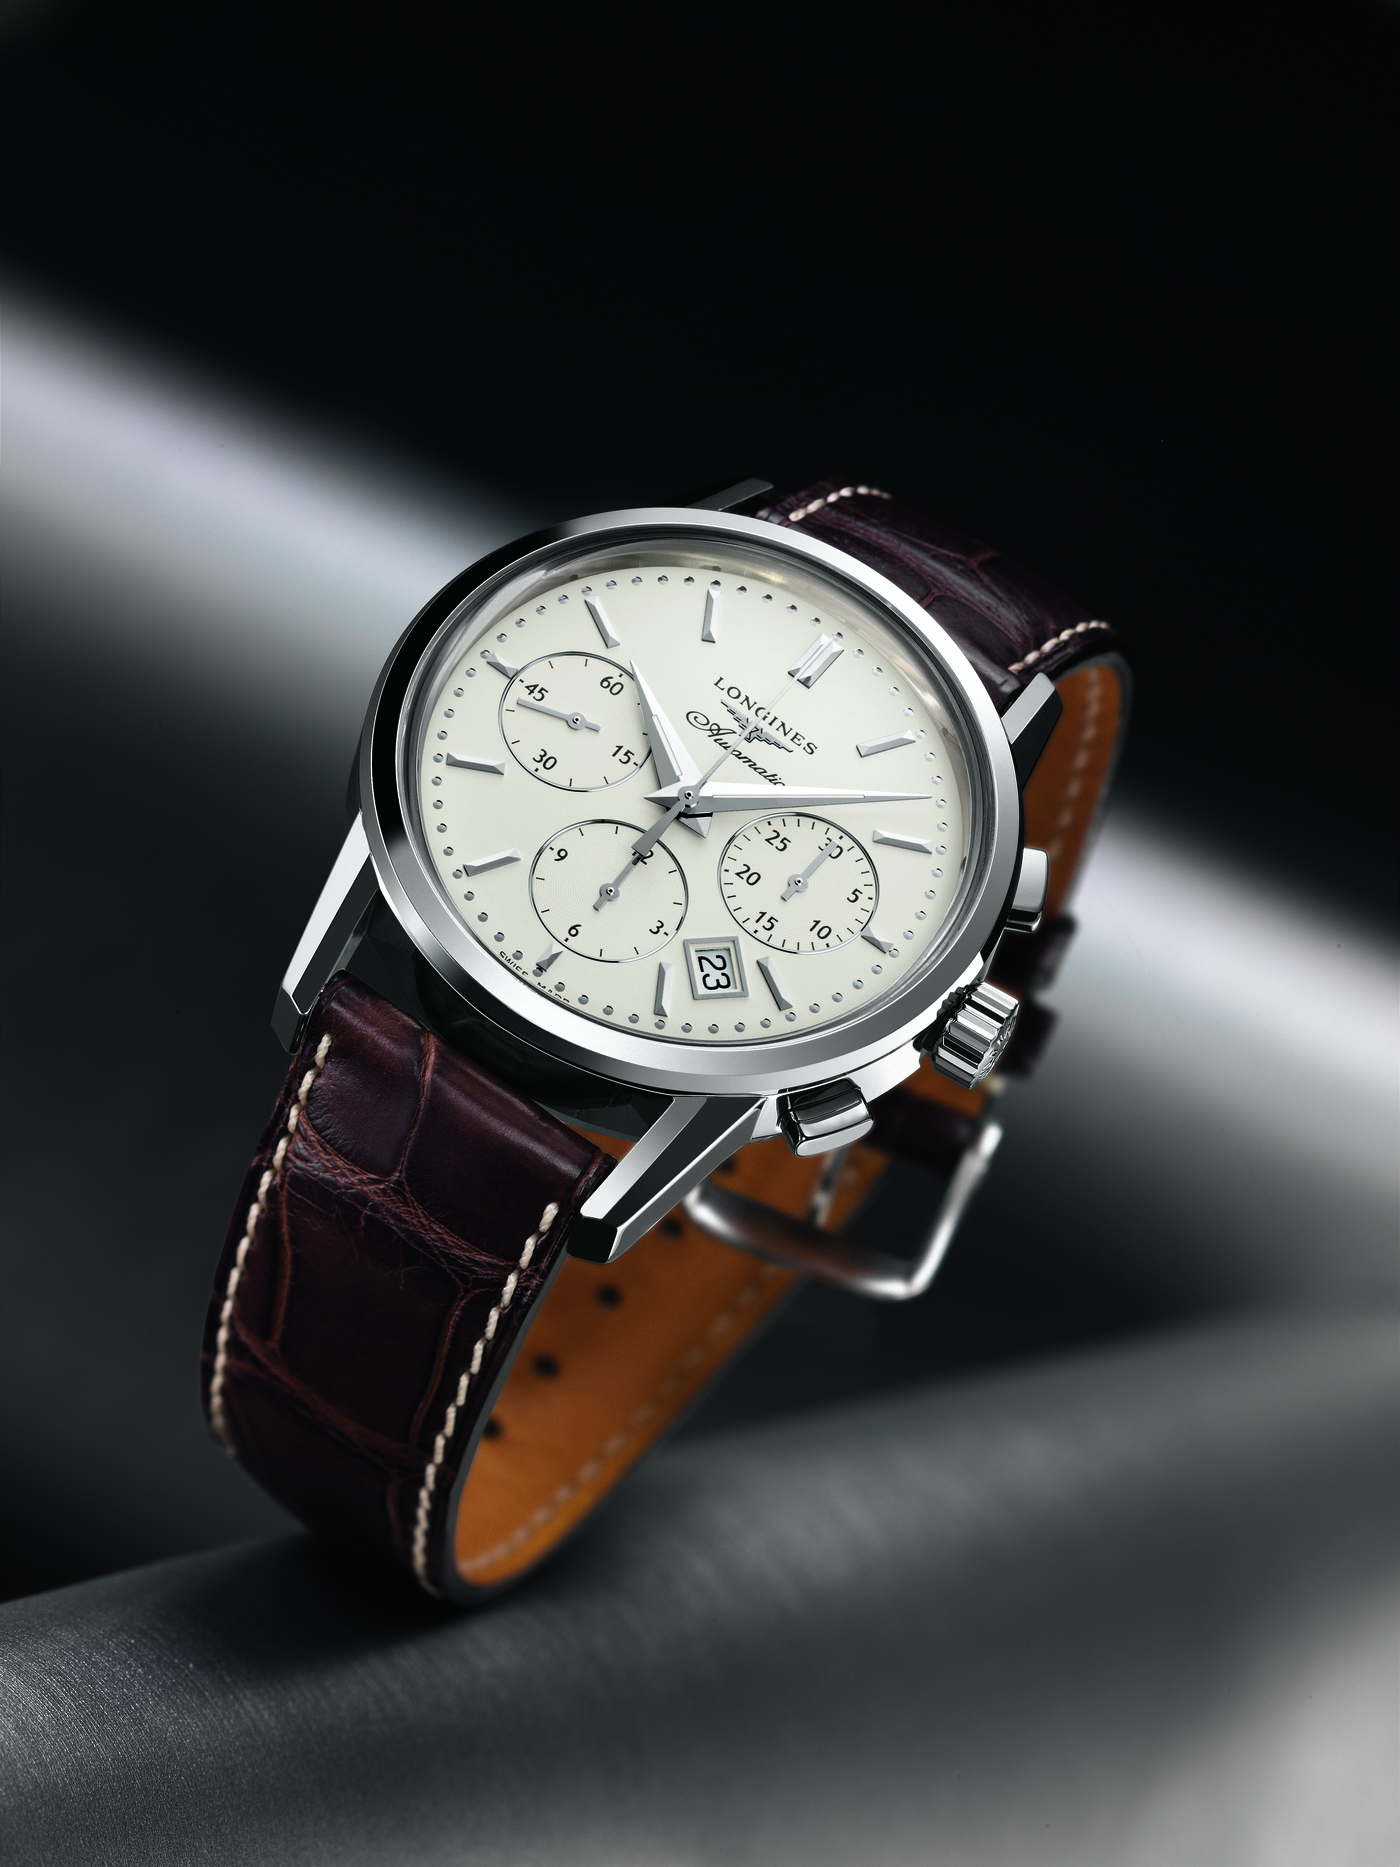 Longines Flat Racing Event: THE SWISS WATCH BRAND LONGINES PARTNERS WITH CHURCHILL DOWNS INCORPORATED AS 'OFFICIAL TIMEKEEPER' OF KENTUCKY DERBY®, HOME TRACK 2